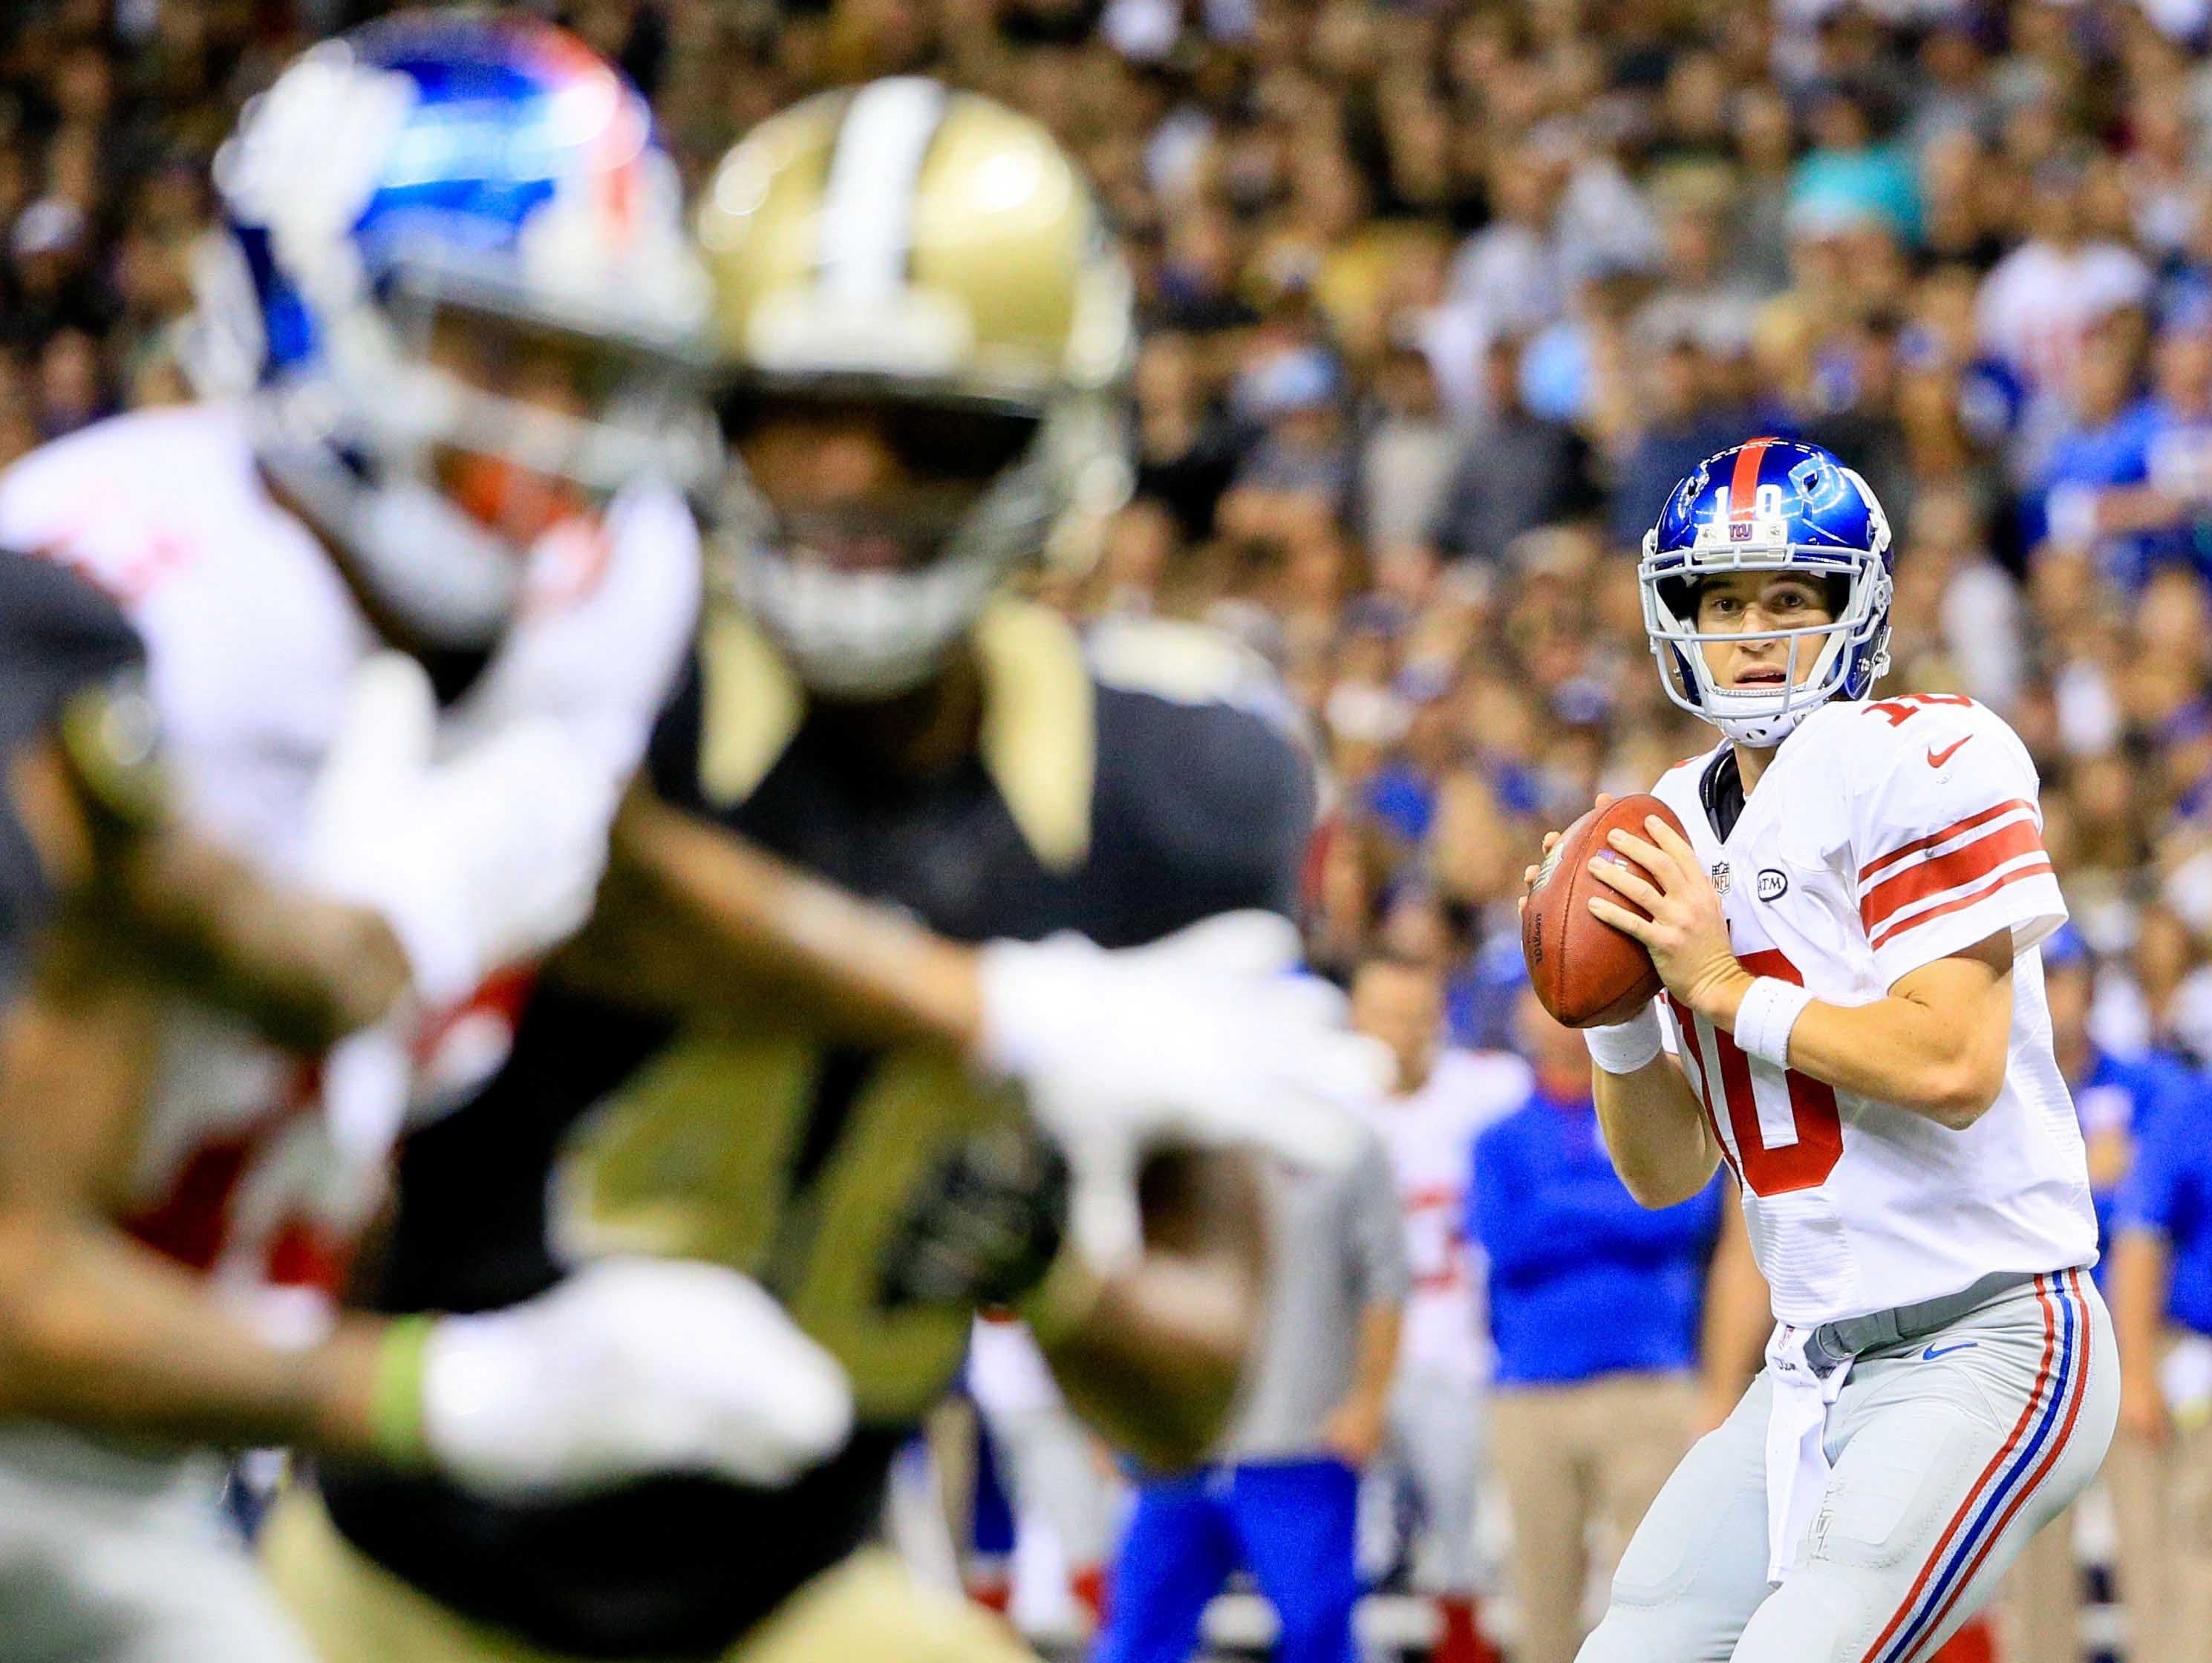 New York Giants quarterback Eli Manning (10) looks to pass against the New Orleans Saints during the second half.